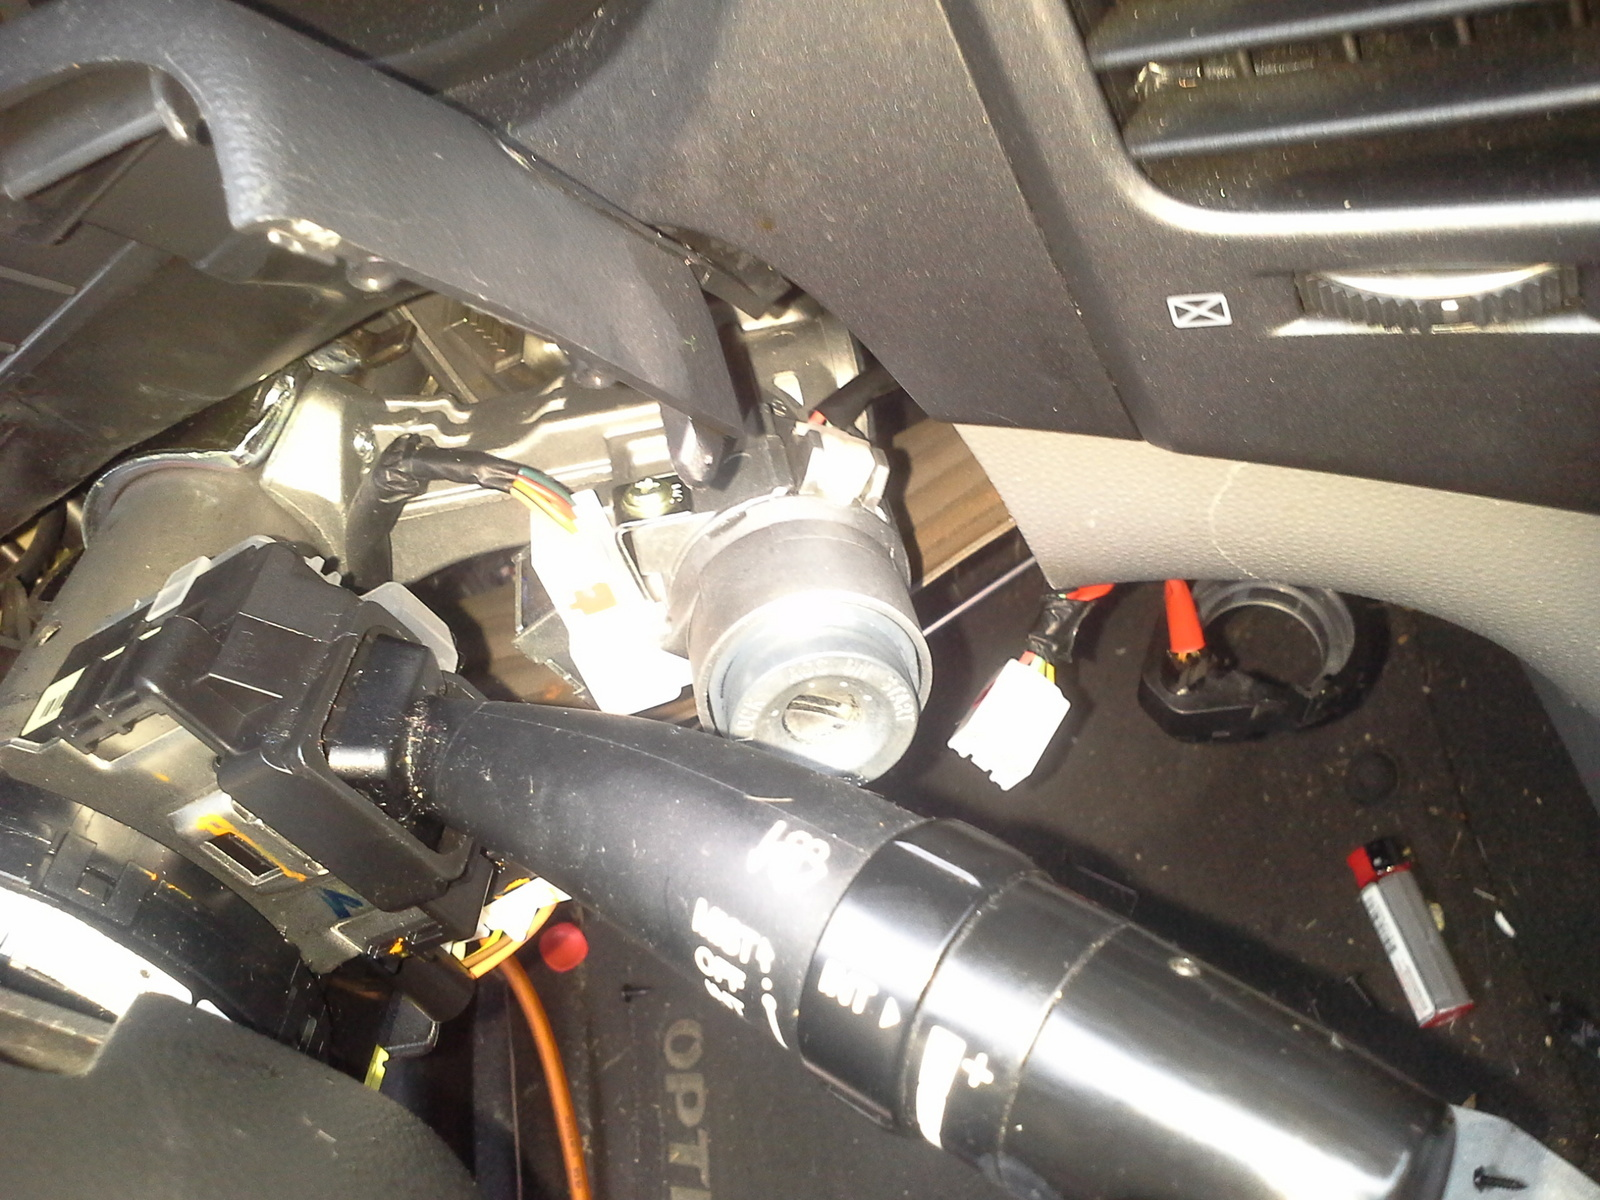 09 kia optima ignition lock cylinder/switch problem